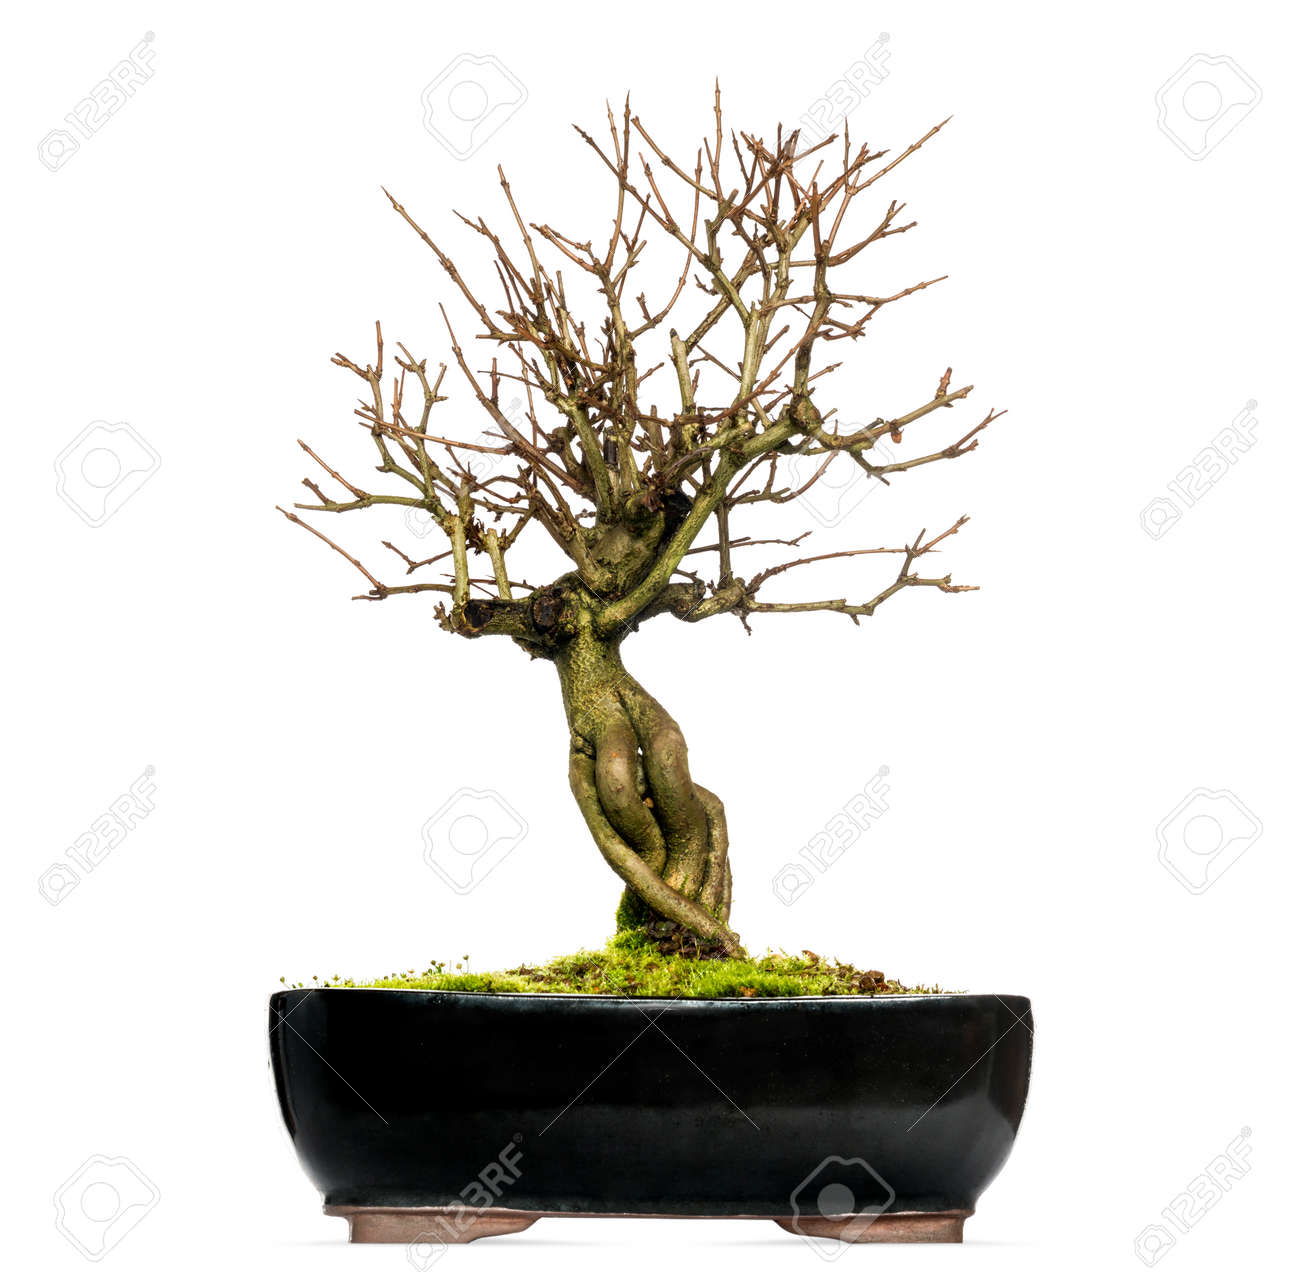 Pomegranate Bonsai Tree Punica Granatum Isolated On White Stock Photo Picture And Royalty Free Image Image 25553249